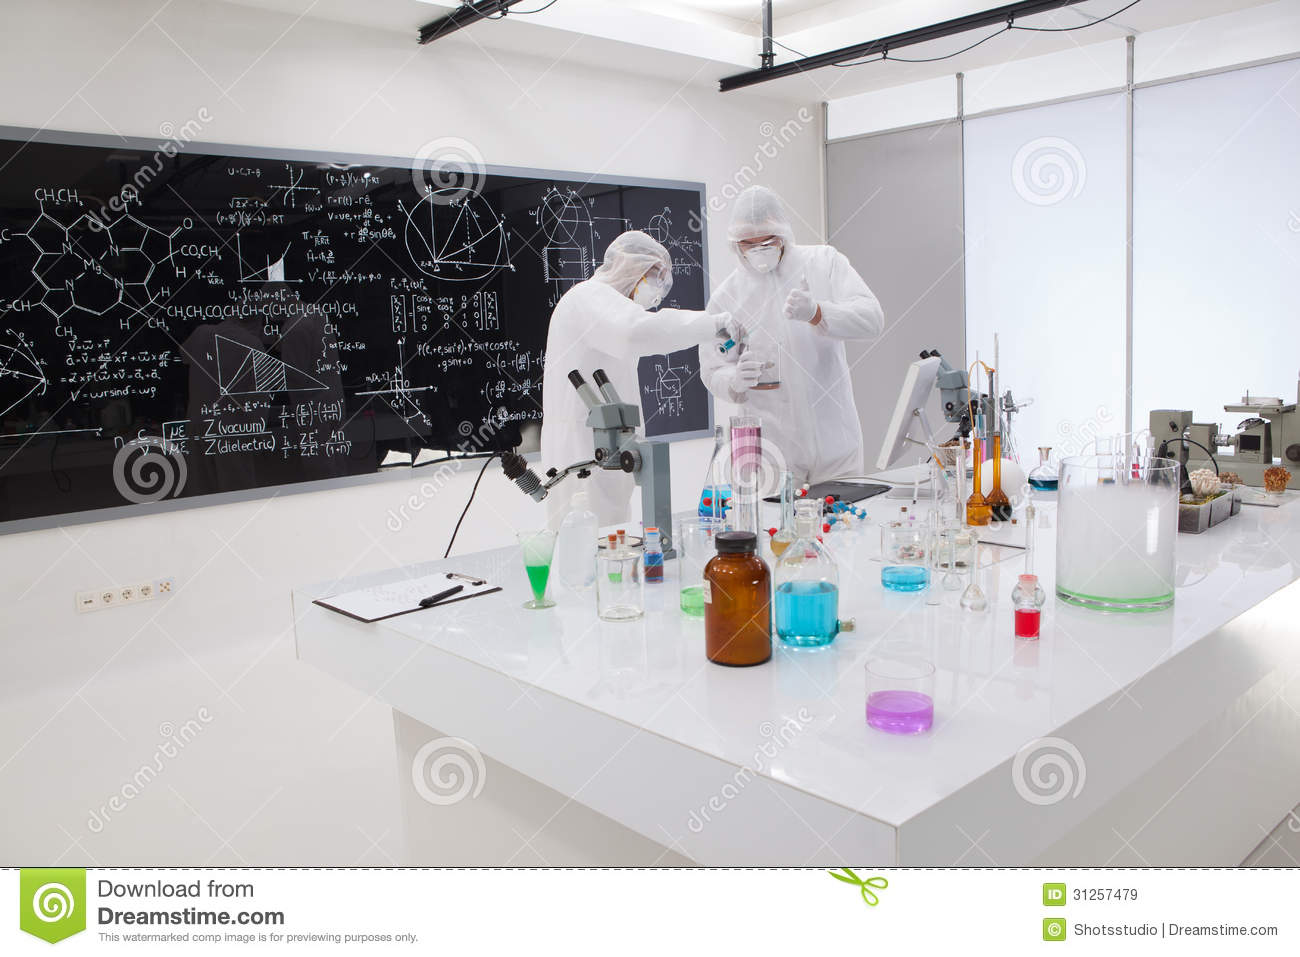 Two People Working In A Chemistry Lab Stock Image - Image of